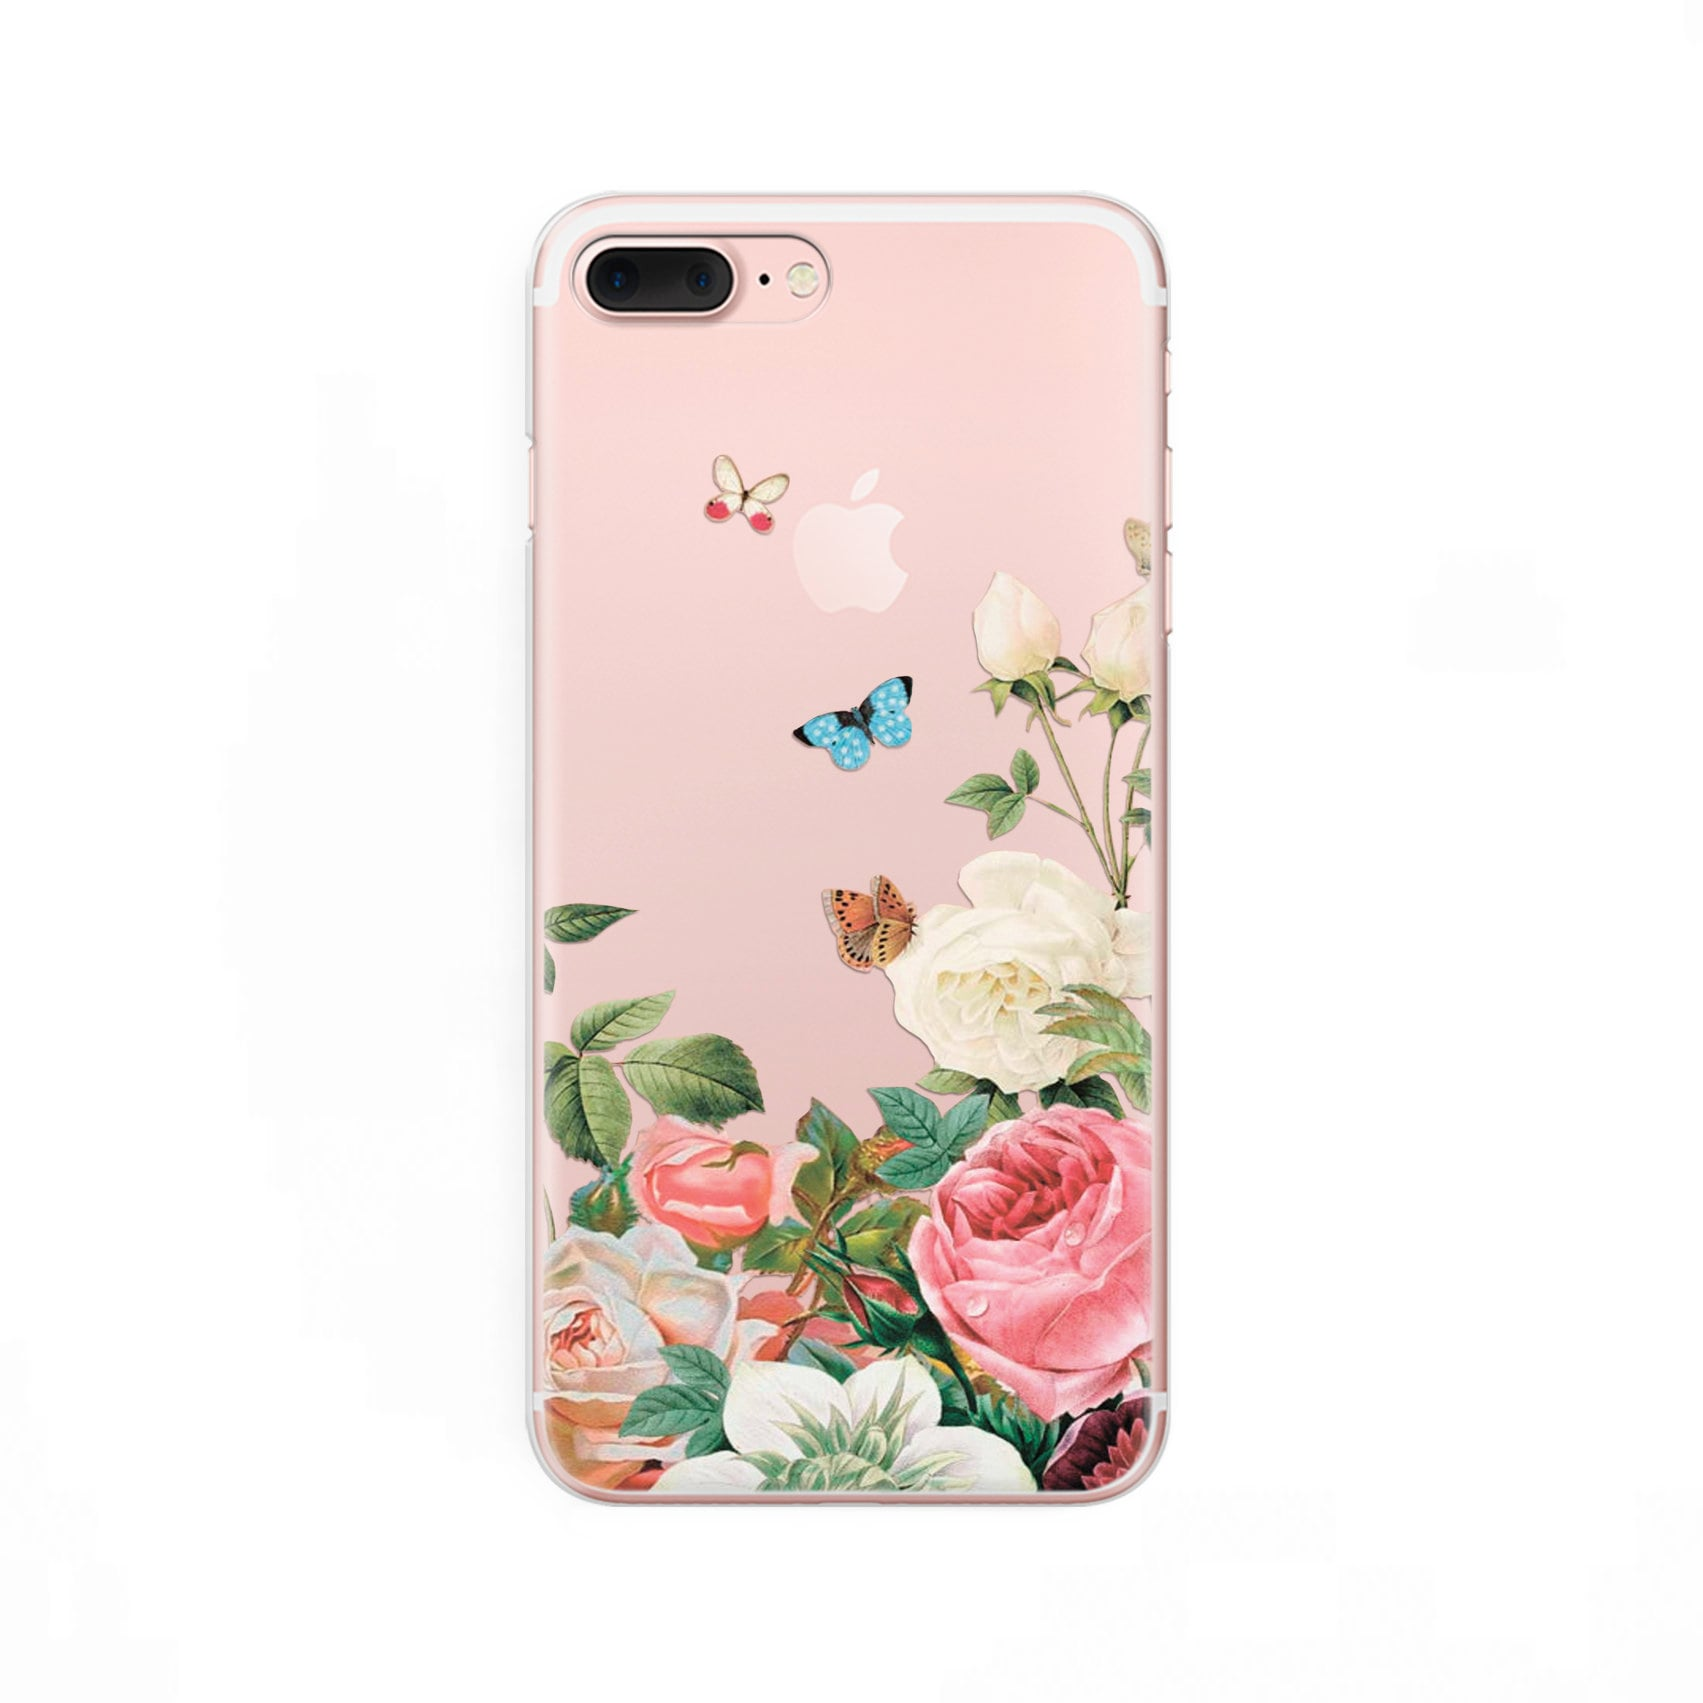 Floral Iphone 8 Case Flowers Iphone 7 Plus Case Slear Iphone X Etsy